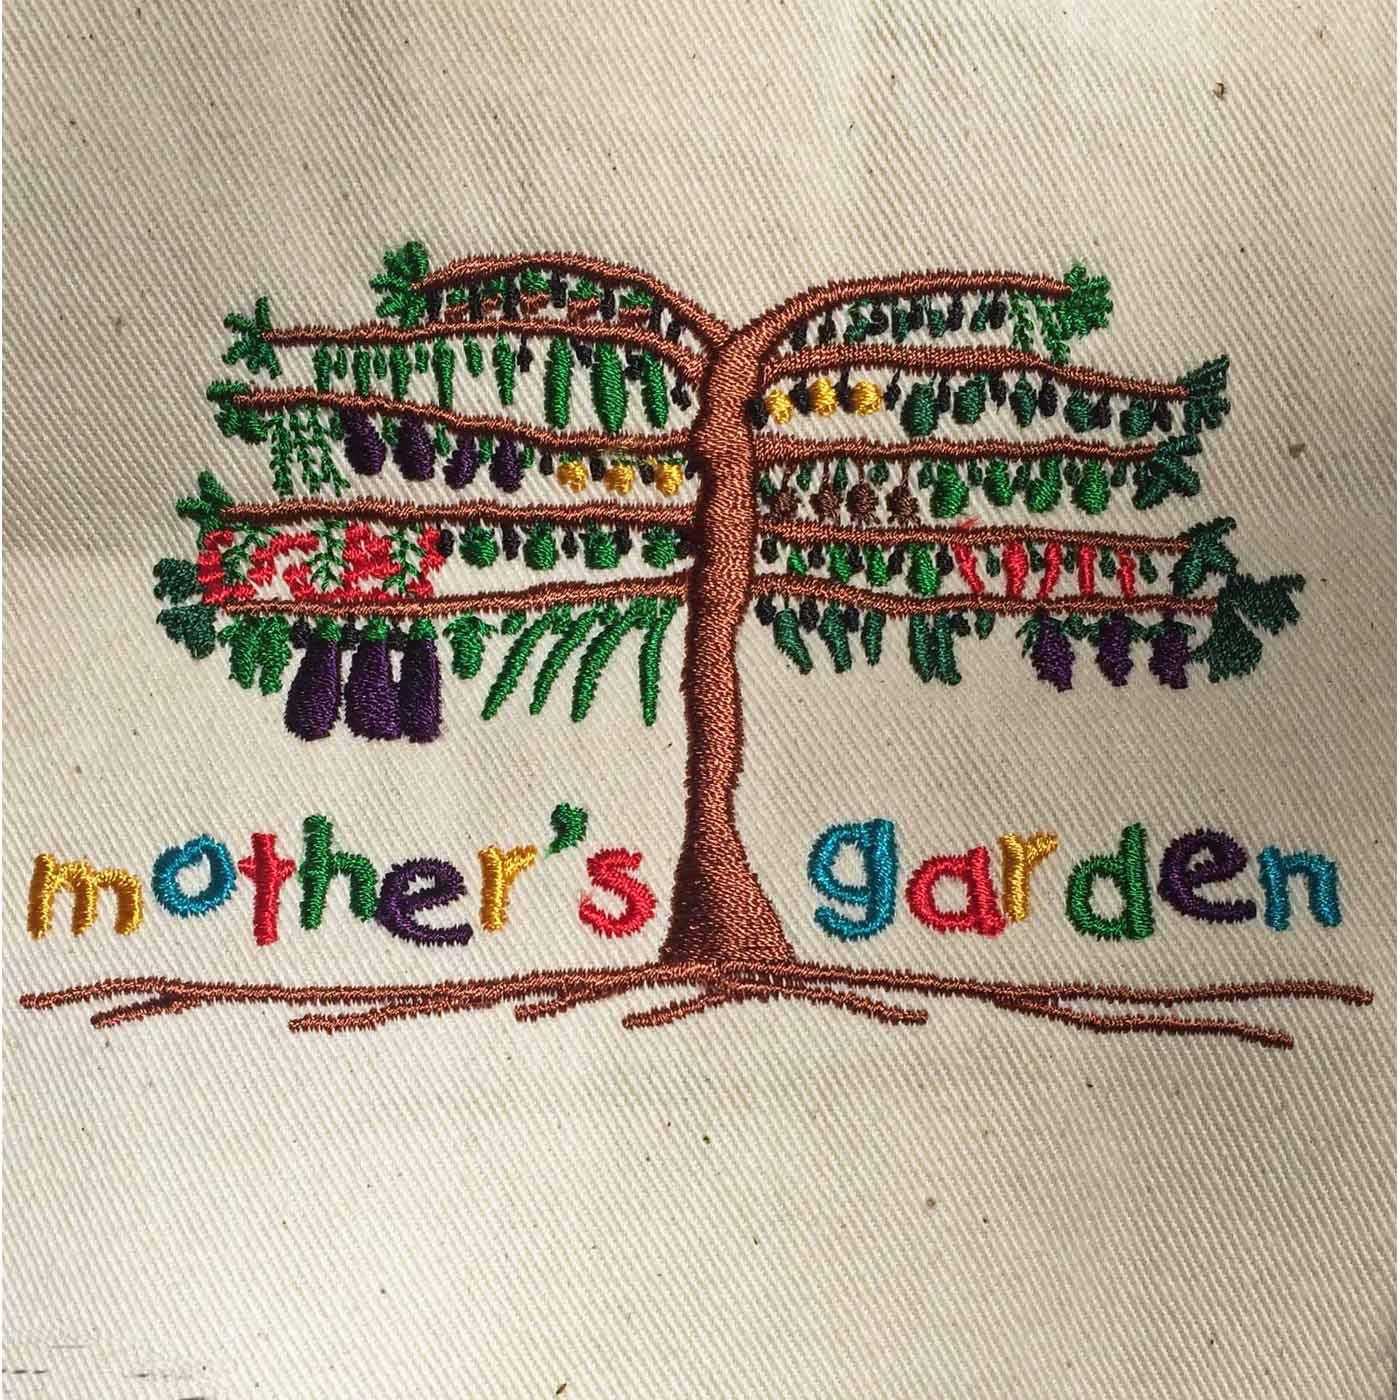 The Mother's Garden Podcast